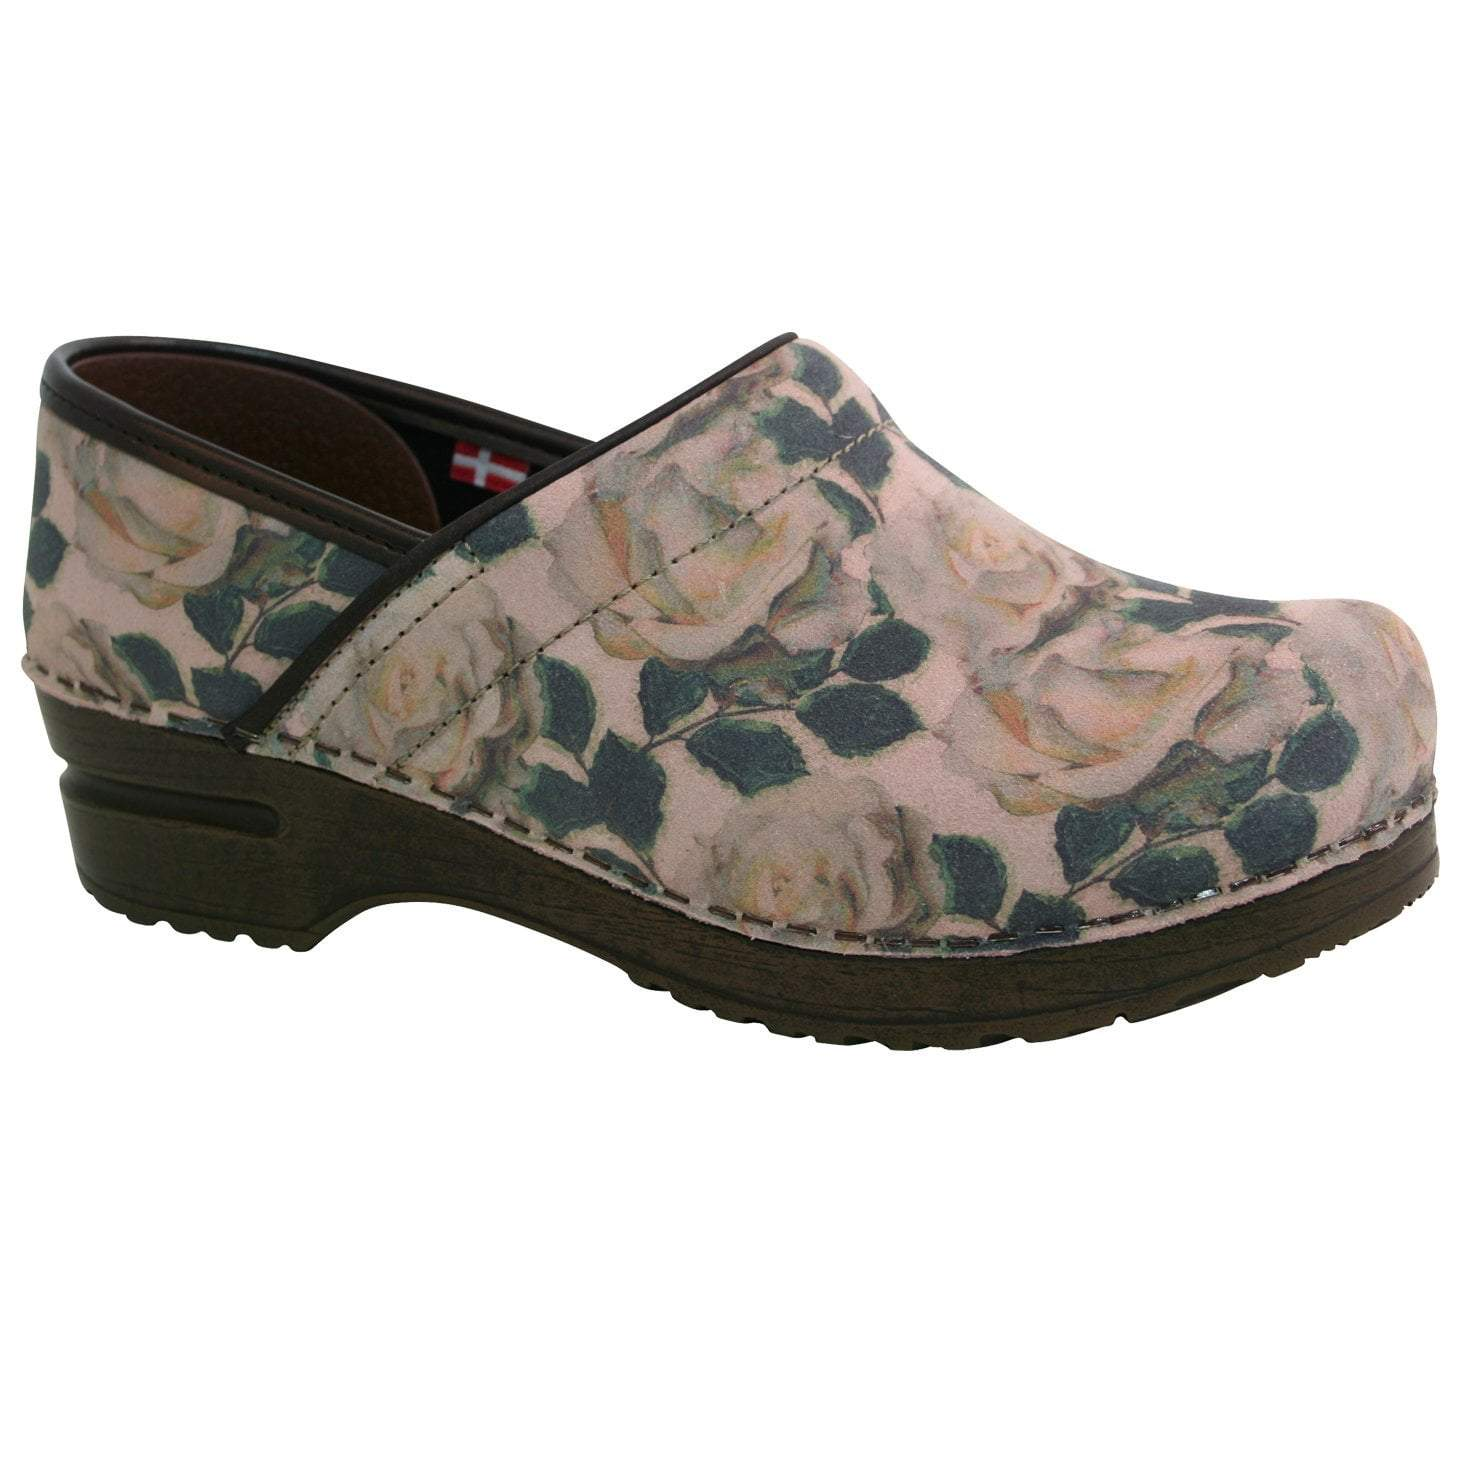 Sanita Flora Women's Closed Back Clog